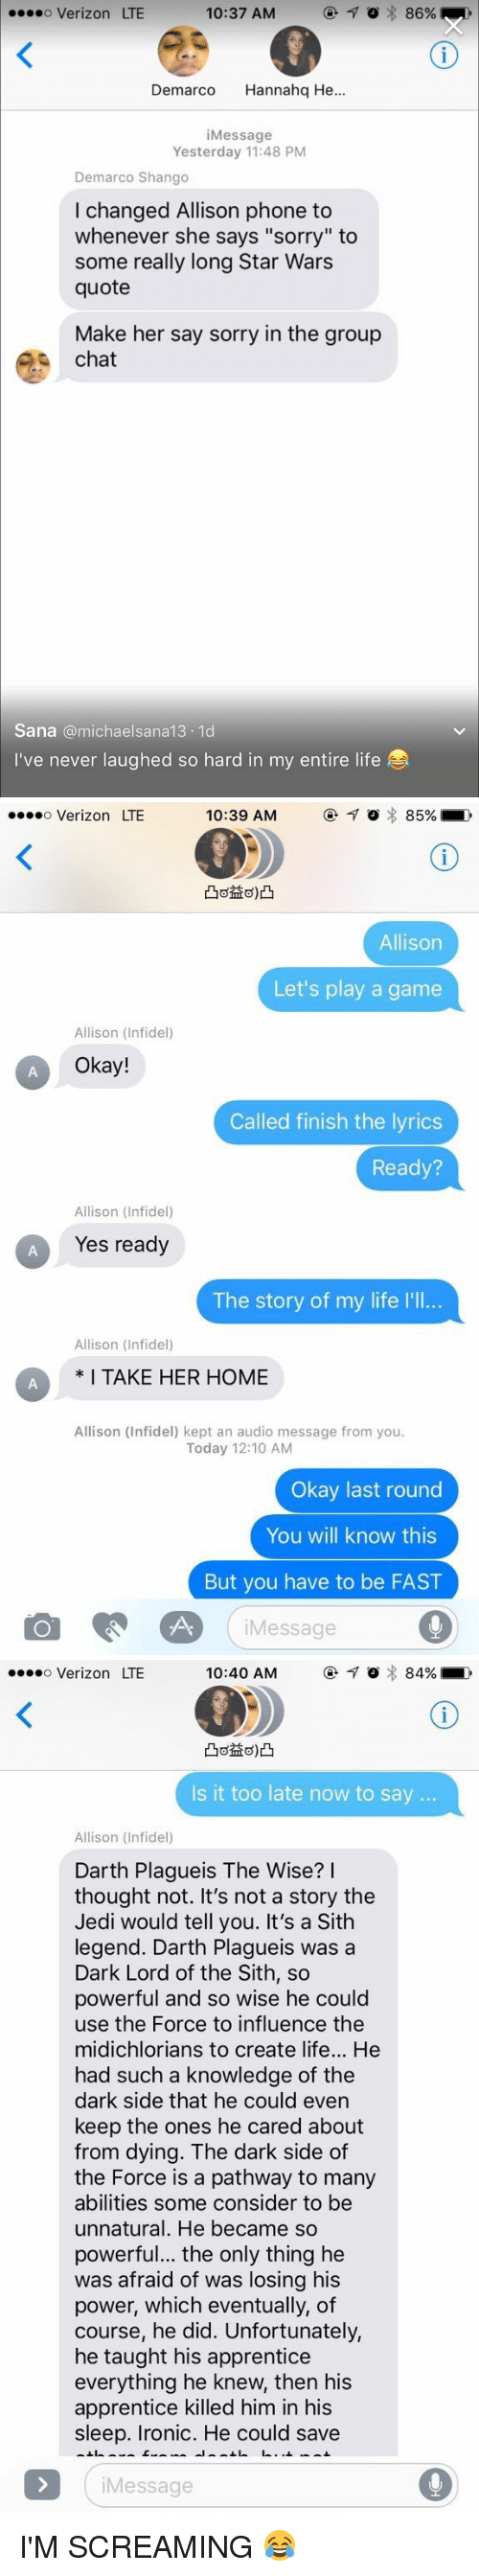 """Anna, Group Chat, and Jedi: 10:37 AM  7 o 86%  ....o Verizon LTE  Demarco  anna  He  i Message  Yesterday 11:48 PM  Demarco Shango  I changed Allison phone to  whenever she says """"sorry"""" to  some really long Star Wars  quote  Make her say sorry in the group  chat  Sana michael sana 13.1d  I've never laughed so hard in my entire life   10:39 AM  o 85%  o Verizon LTE  Allison  Let's play a game  Allison (Infidel)  Okay!  Called finish the lyrics  Ready?  Allison (Infidel)  Yes ready  The story of my life l'll...  Allison (Infidel)  CA I TAKE HER HOME  Allison (Infidel) kept an audio message from you.  Today 12:10 AM  Okay last round  You will know this  But you have to be FAST  Message   o Verizon LTE  84%  10:40 AM  Is it too late now to say  Allison (Infidel)  Darth Plagueis The Wise?  I  thought not. It's not a story the  Jedi would tell you. It's a Sith  legend. Darth Plagueis was a  Dark Lord of the Sith, so  powerful and so wise he could  use the Force to influence the  midichlorians to create life... He  had such a knowledge of the  dark side that he could even  keep the ones he cared about  from dying. The dark side of  the Force is a pathway to many  abilities some consider to be  unnatural. He became so  powerful... the only thing he  was afraid of was losing his  power, which eventually, of  course, he did. Unfortunately,  he taught his apprentice  everything he knew, then his  apprentice killed him in his  sleep. Ironic. He could save  Message I'M SCREAMING 😂"""